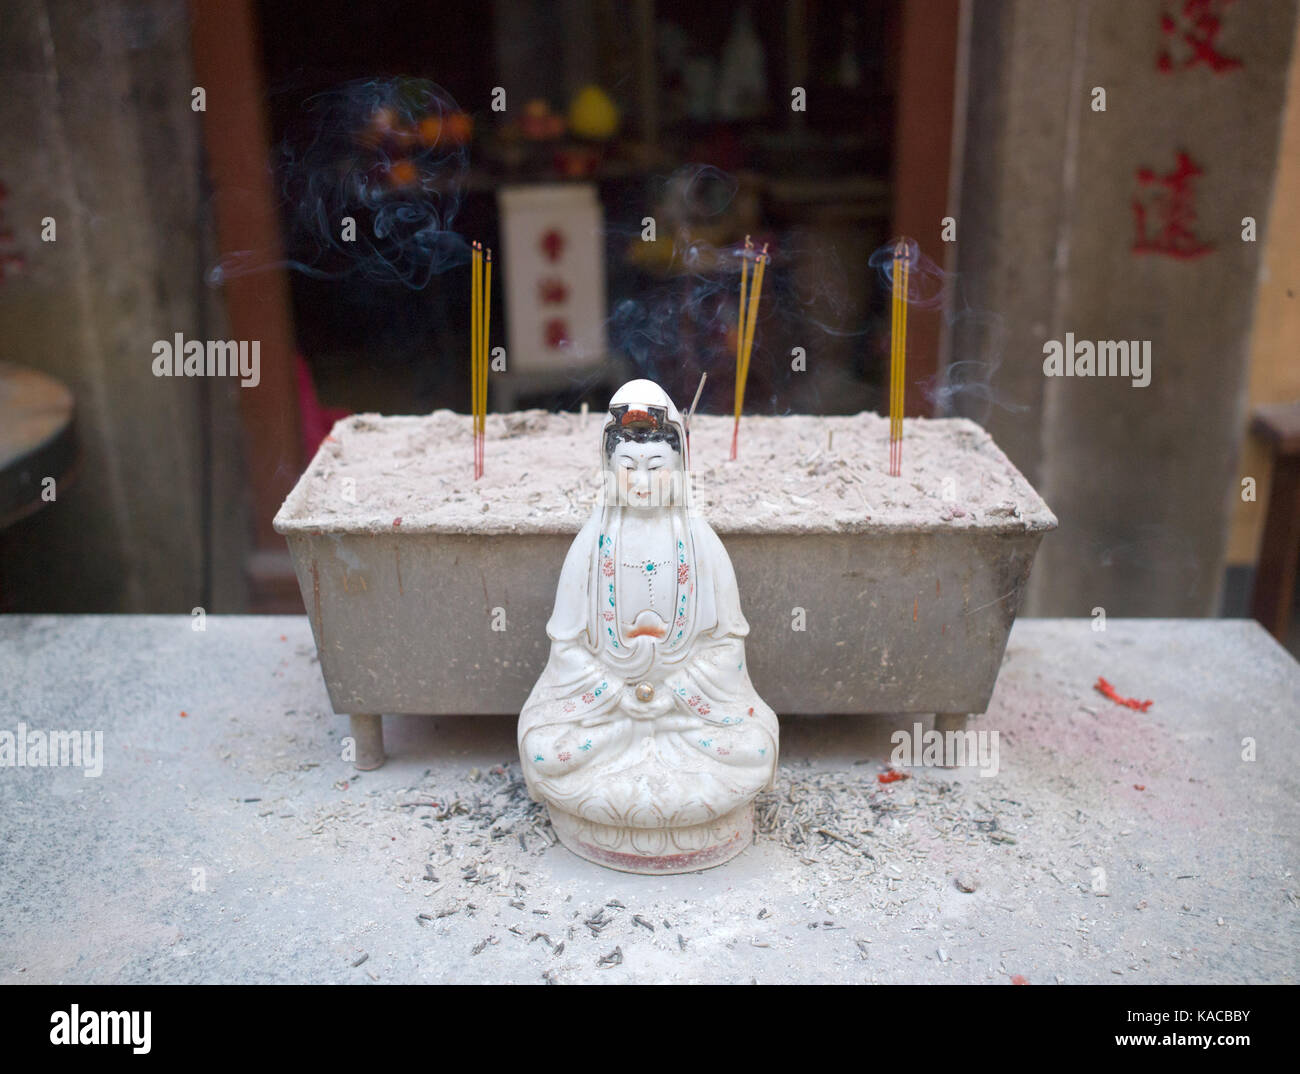 Miniature statue of female Buddhist deity sitting in front of sand-filled trough where incense sticks smoulder. - Stock Image